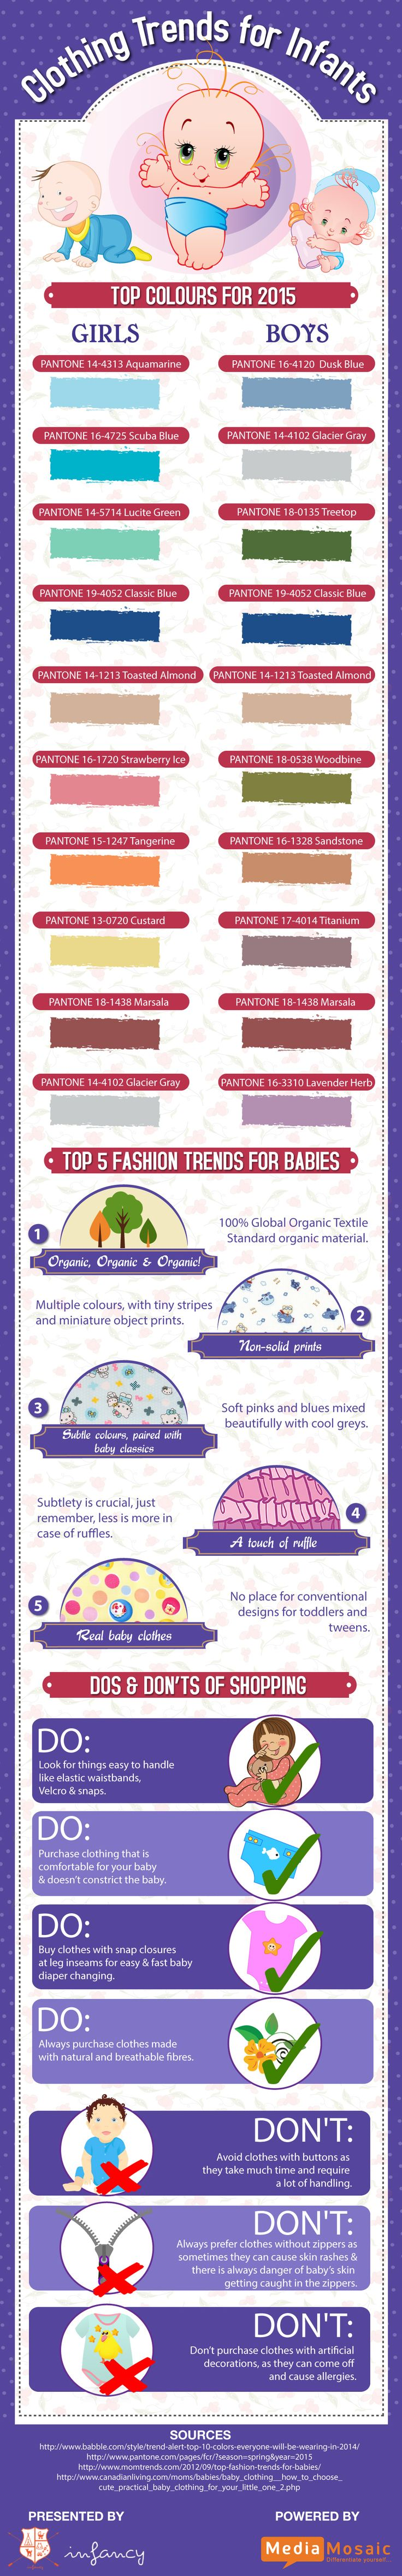 Clothing Trends for Infants